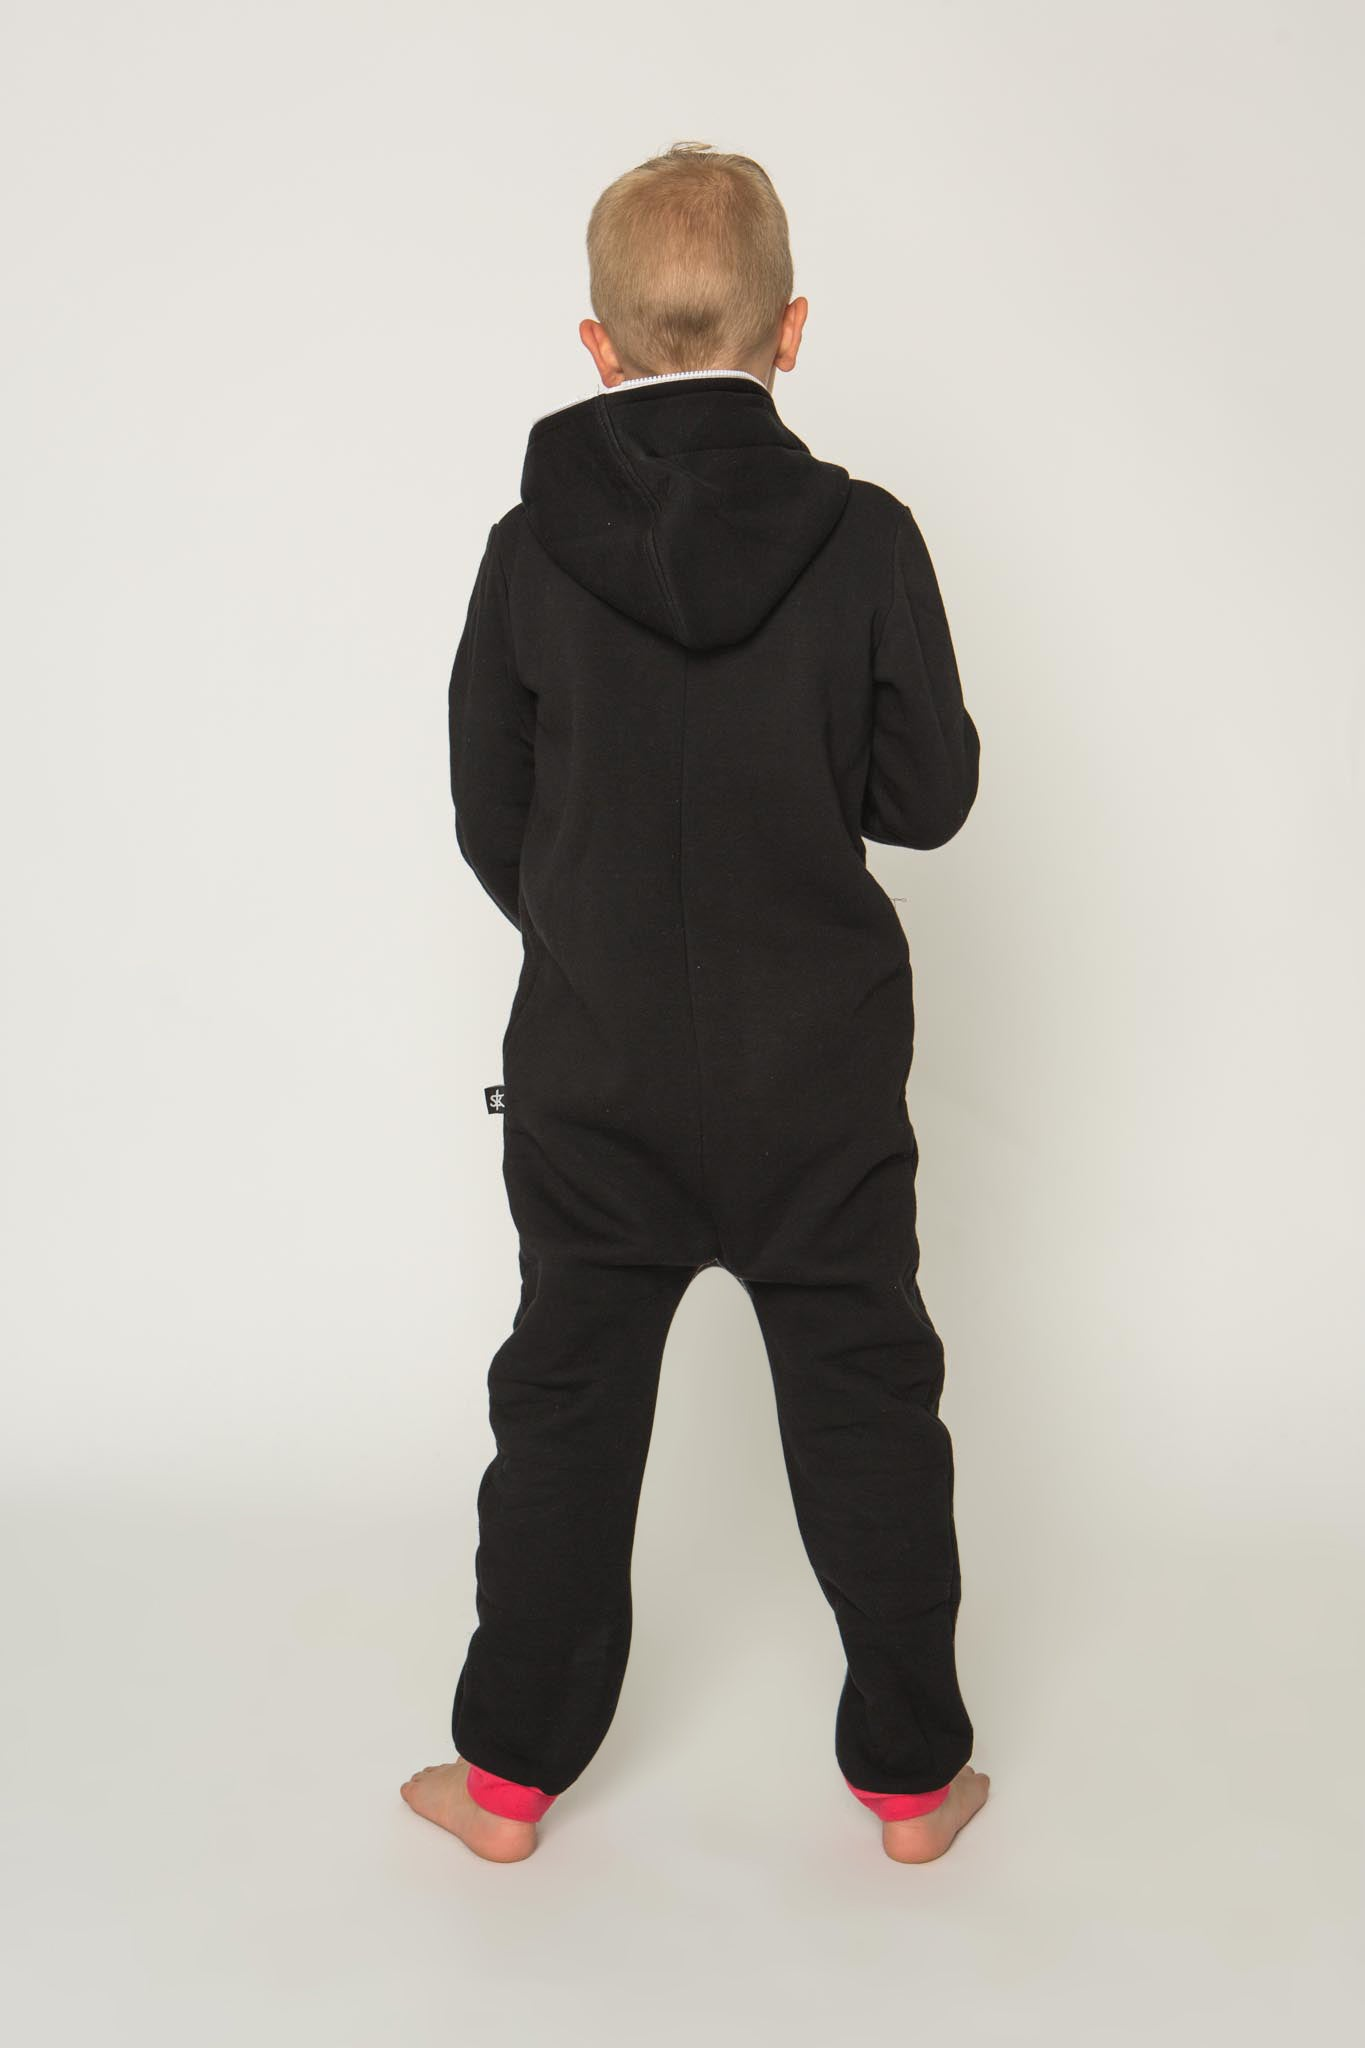 Sofa Killer black unisex kids onesie with red cuffs